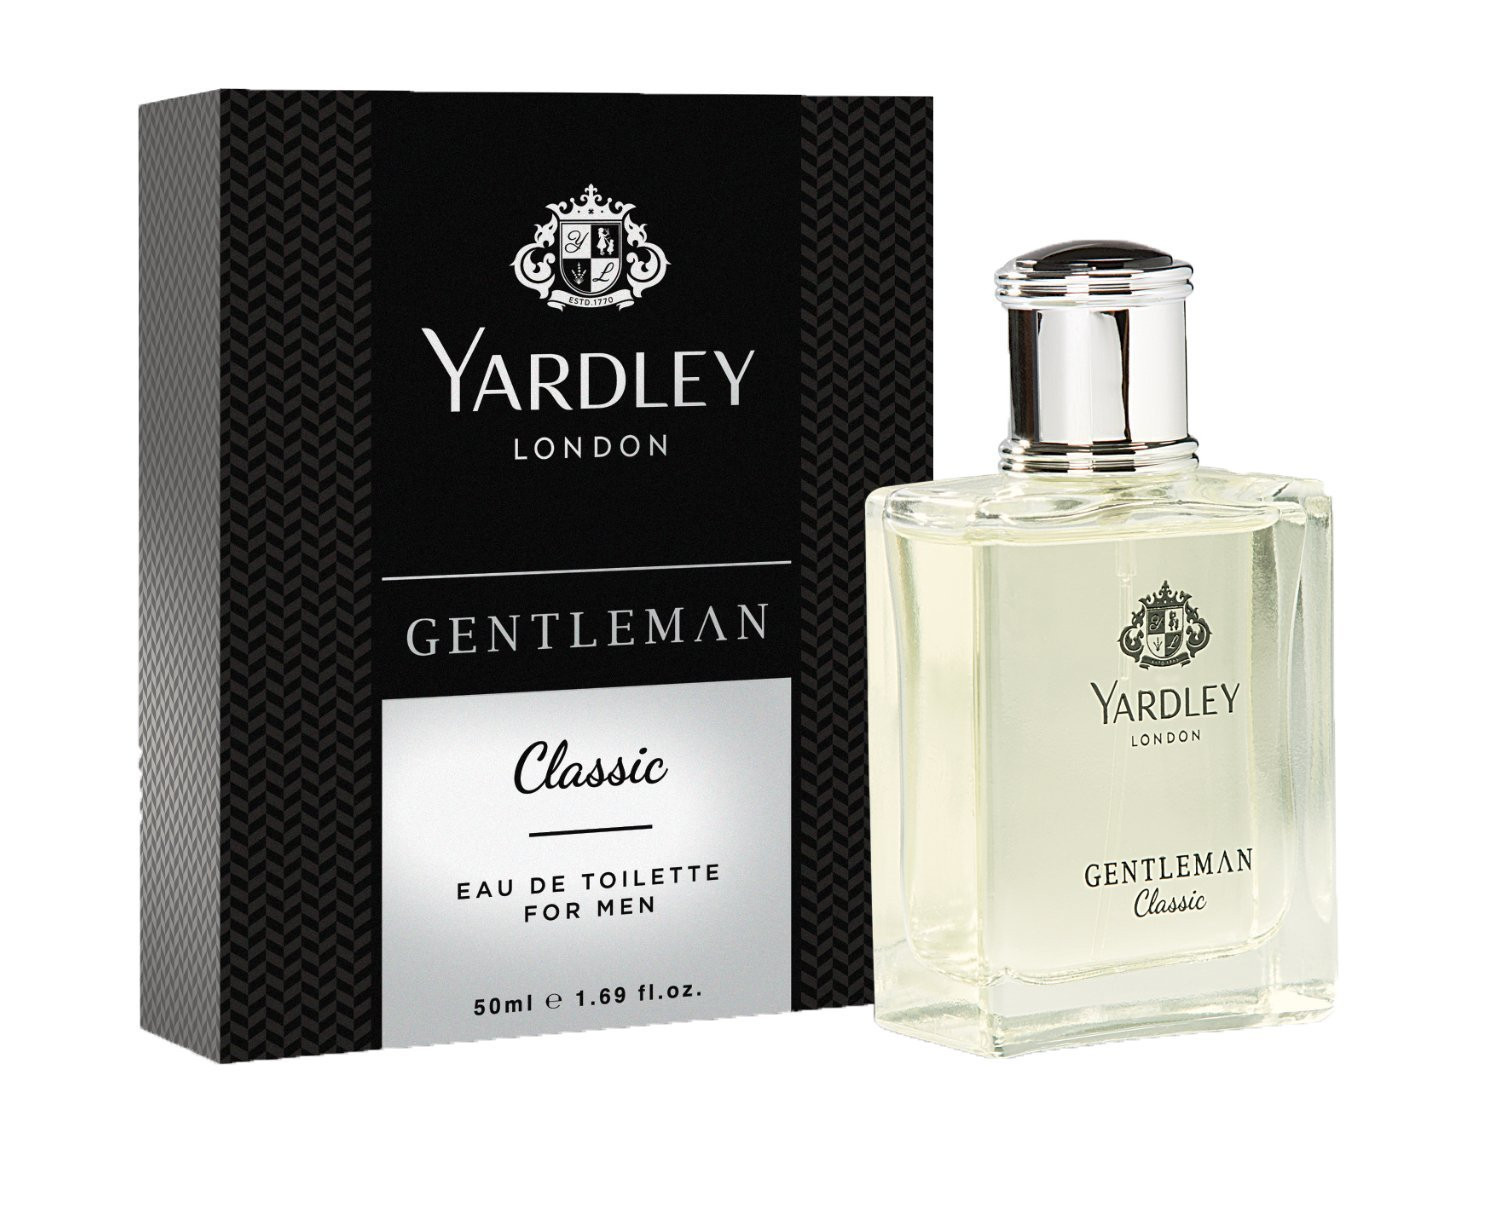 Yardley London Gentleman Classic Eau de Toilette for Men- 50 ml